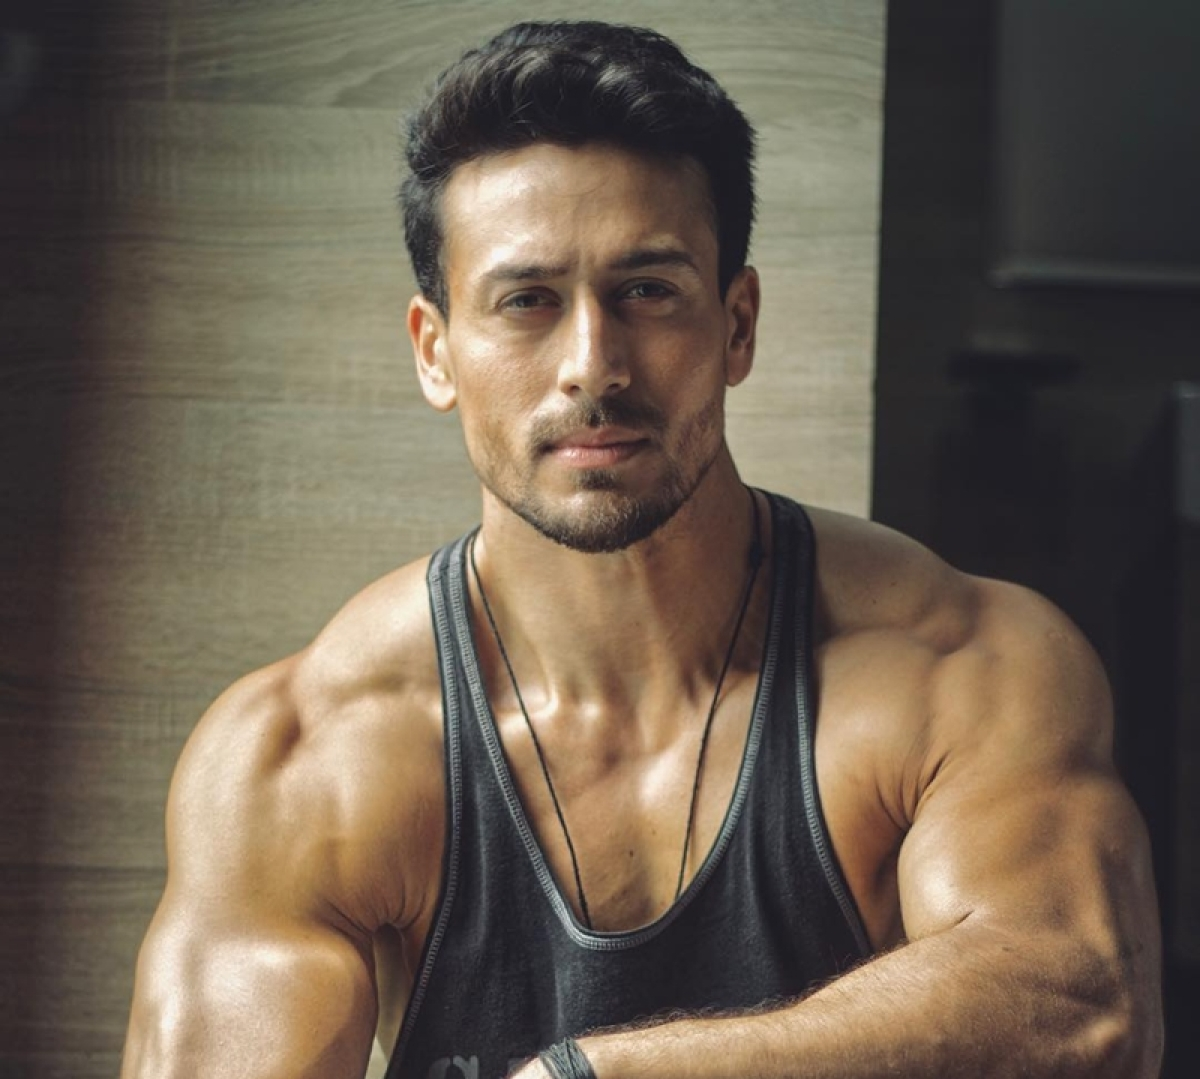 The fact that people want to know about your personal life, means you've made a mark: Tiger Shroff